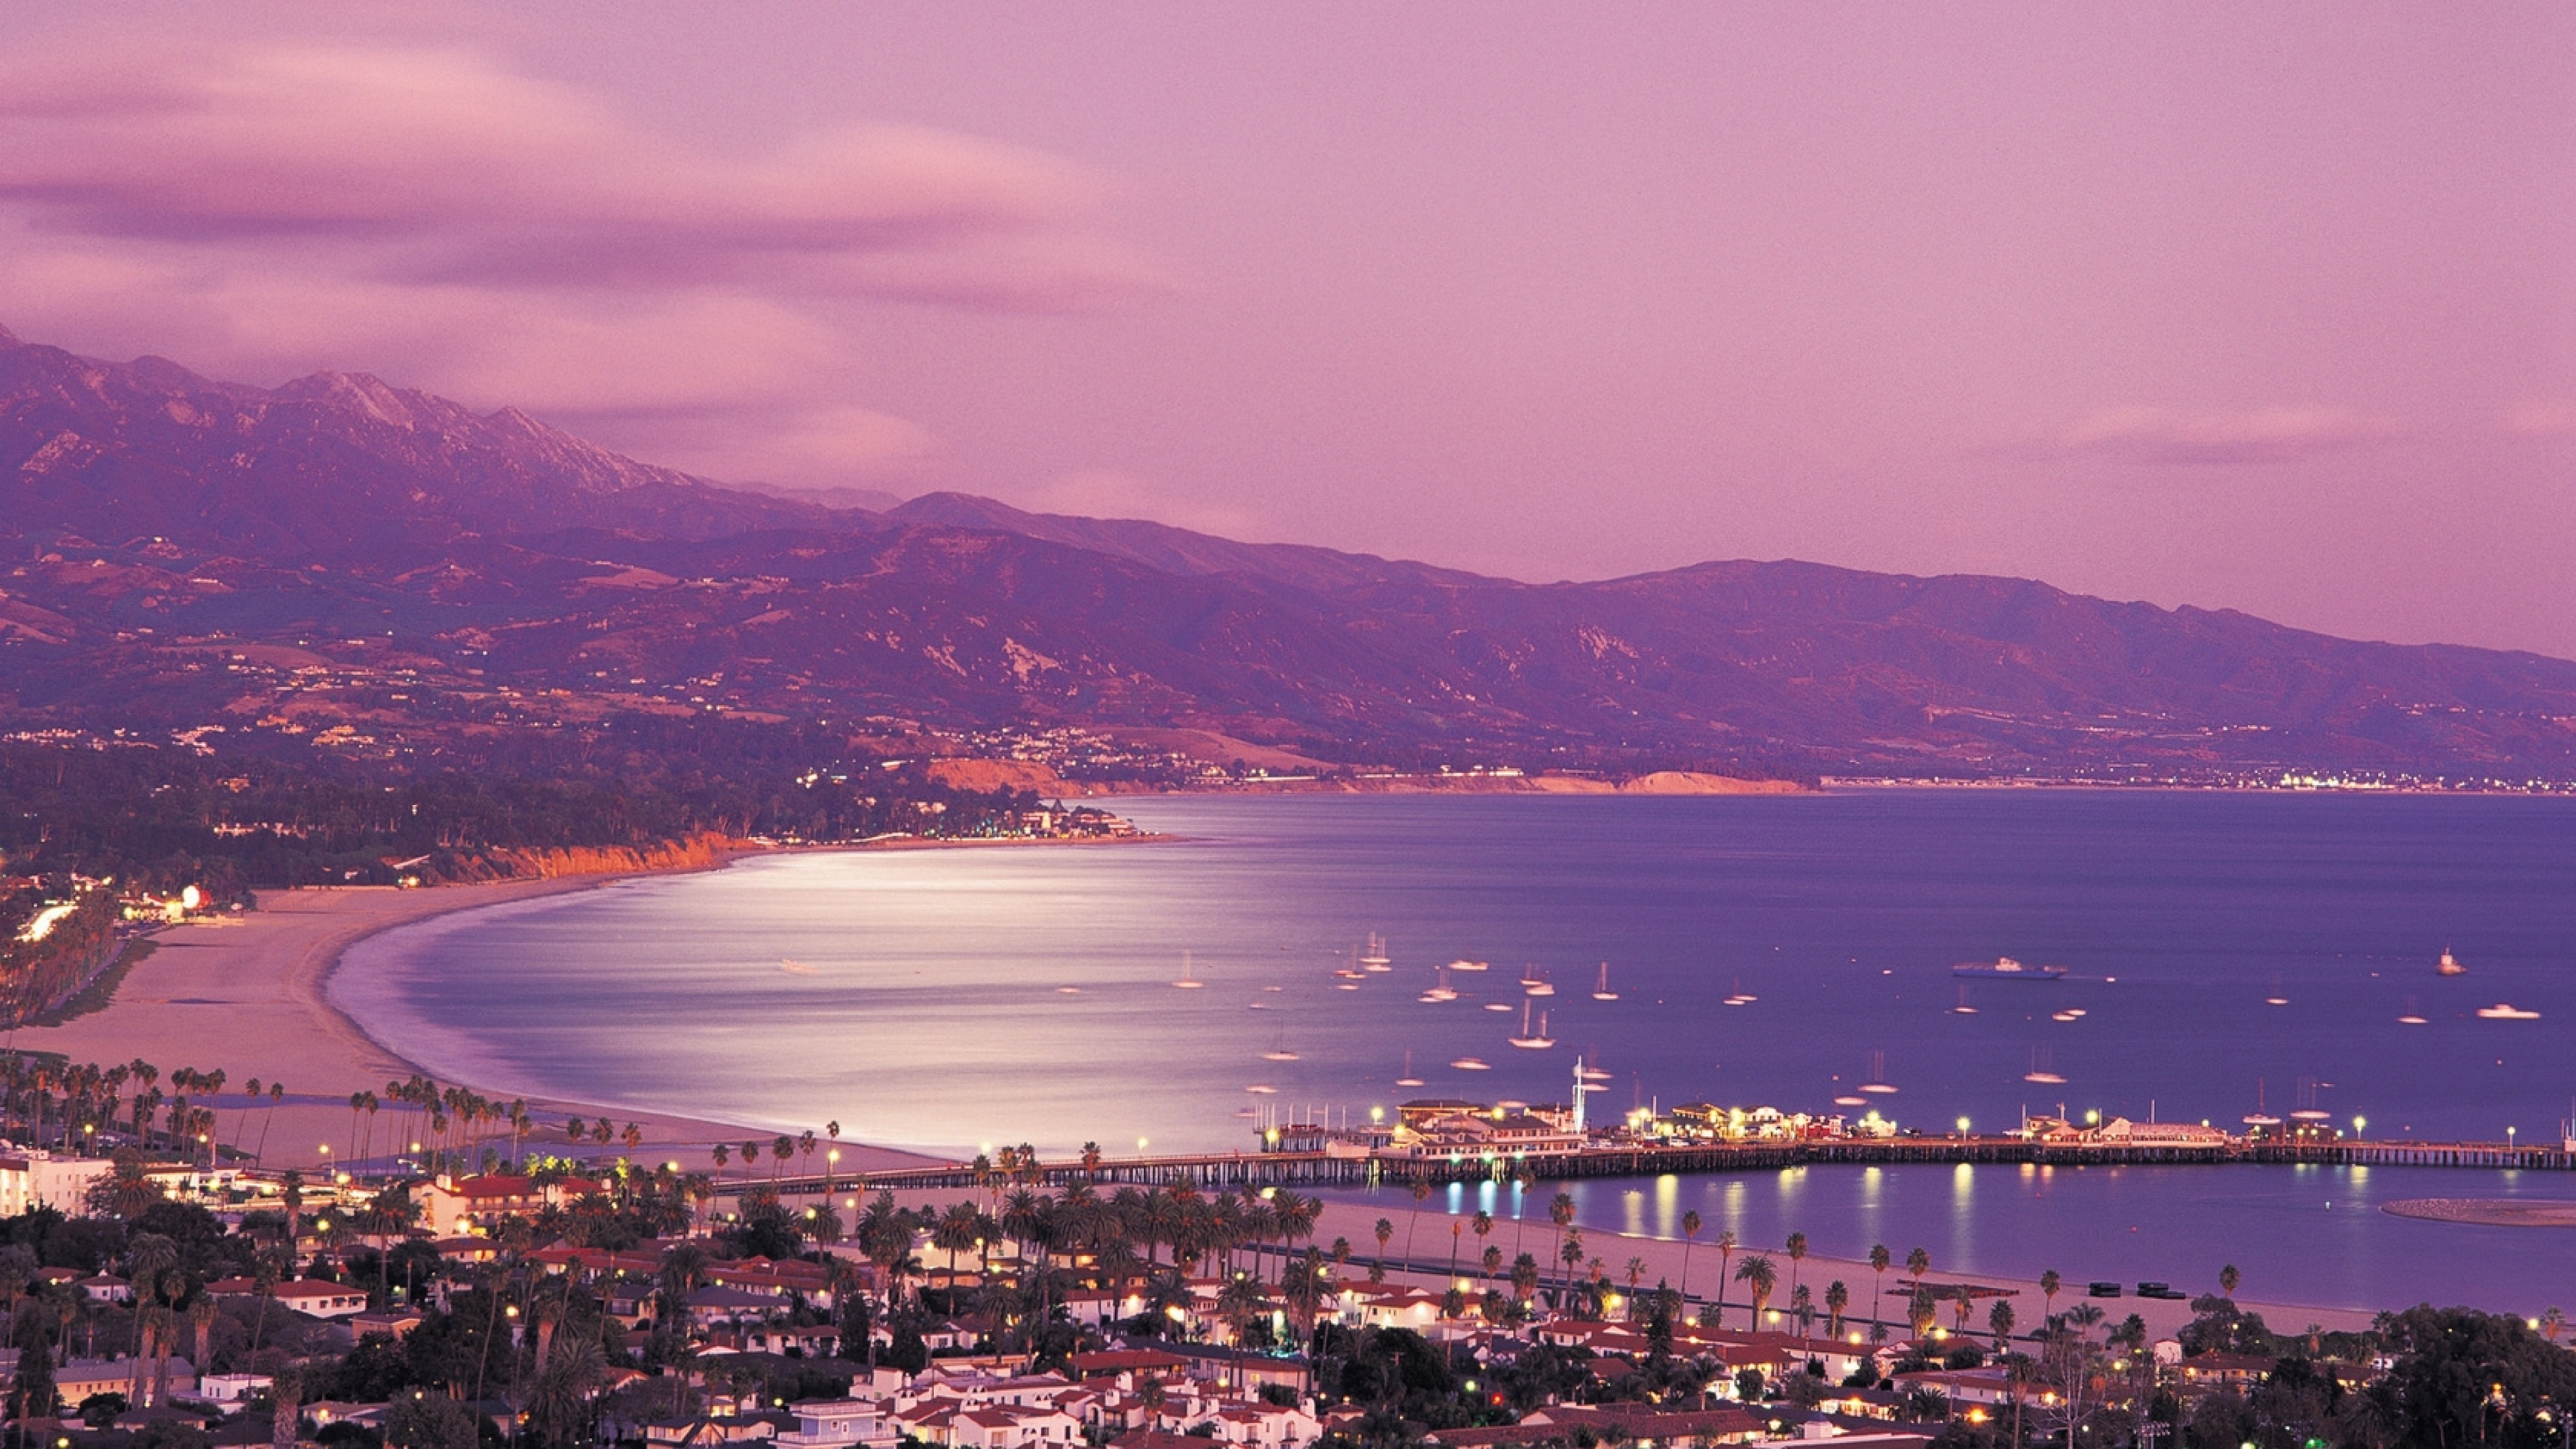 3840x2160 Preview wallpaper santa barbara, california, united states of america